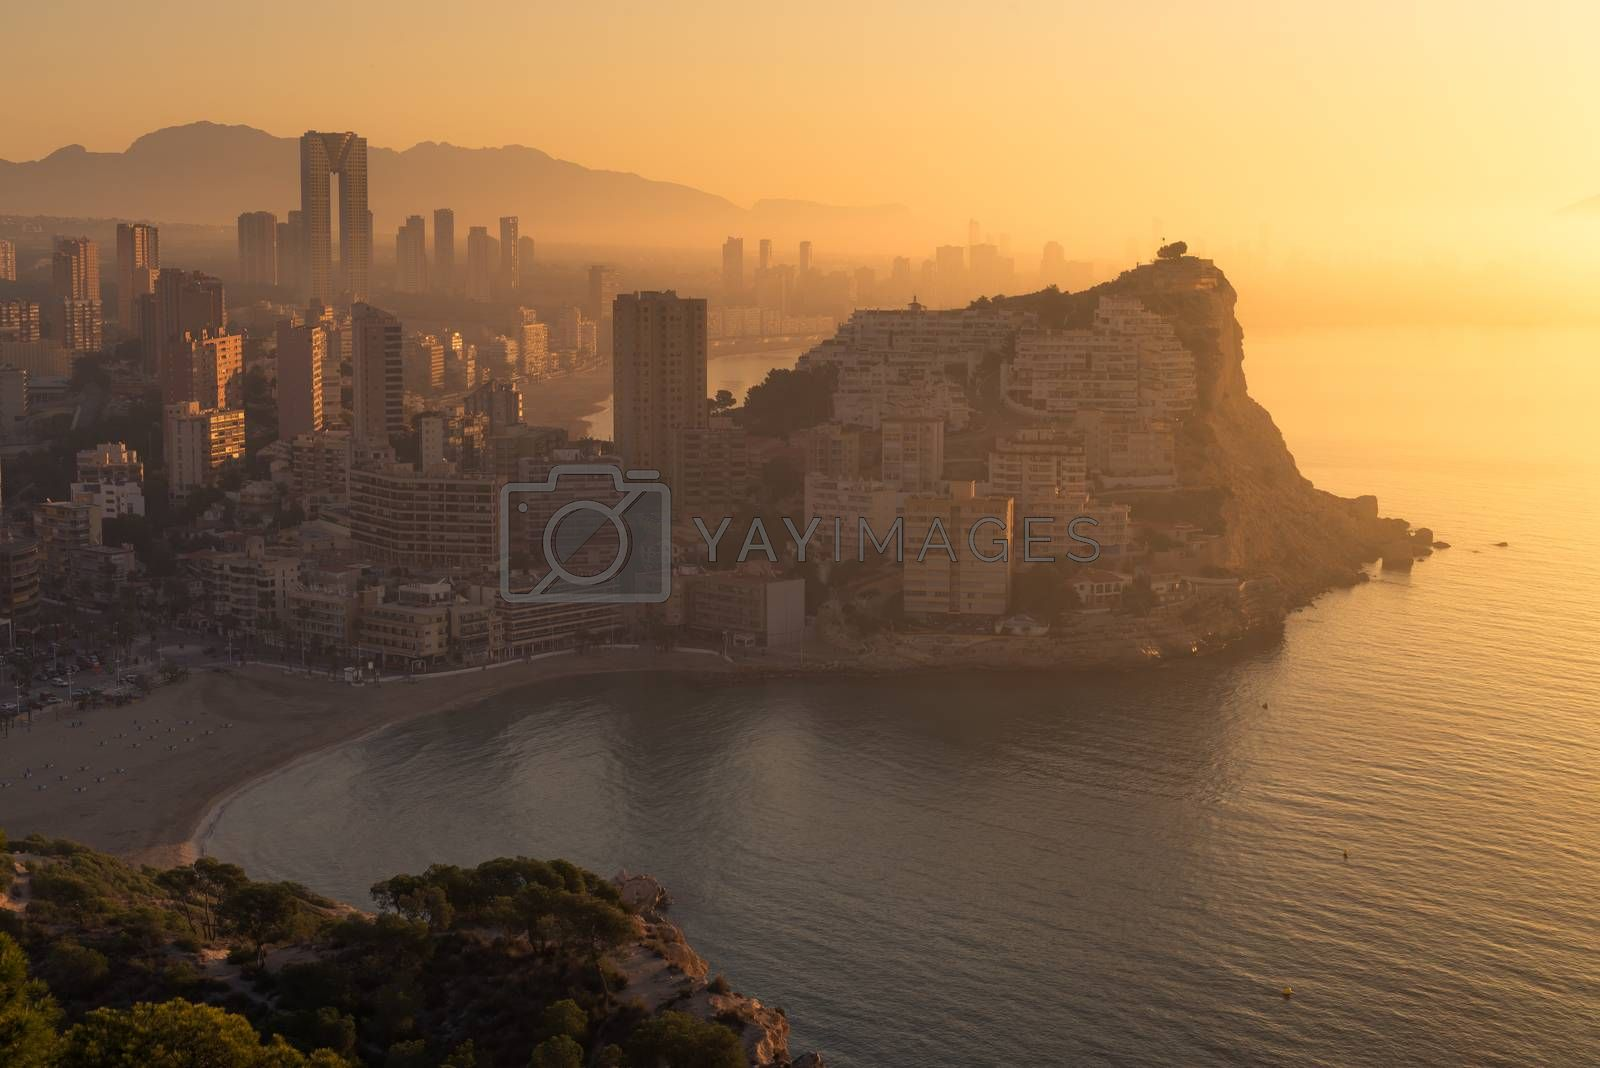 A foggy early morning casting its light on Benidorm skyline